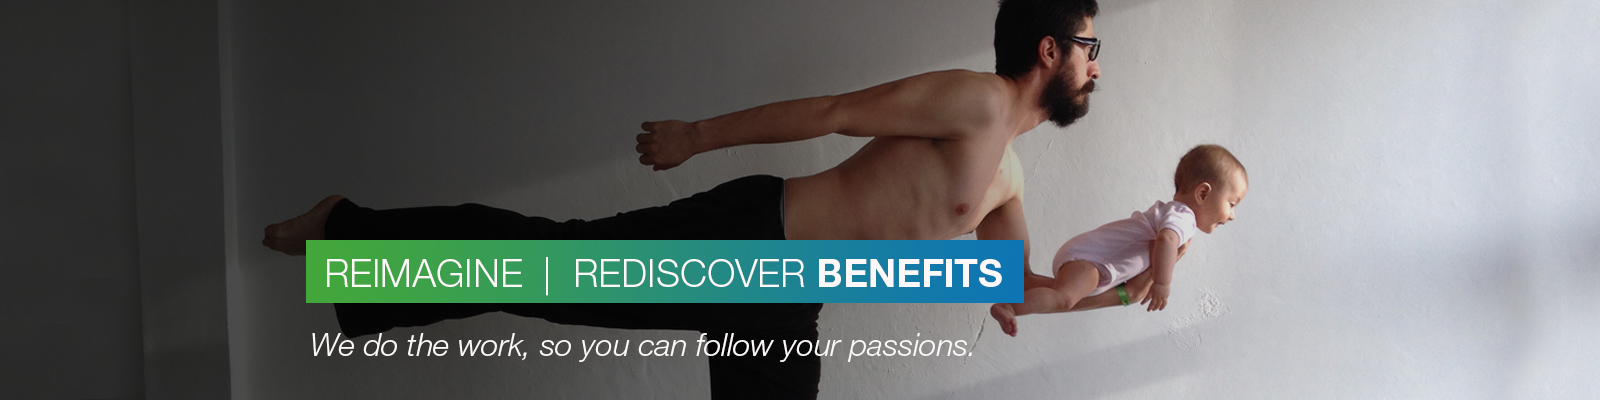 REIMAGINE | REDISCOVER BENEFITS: We do the work, so you can follow your passions.